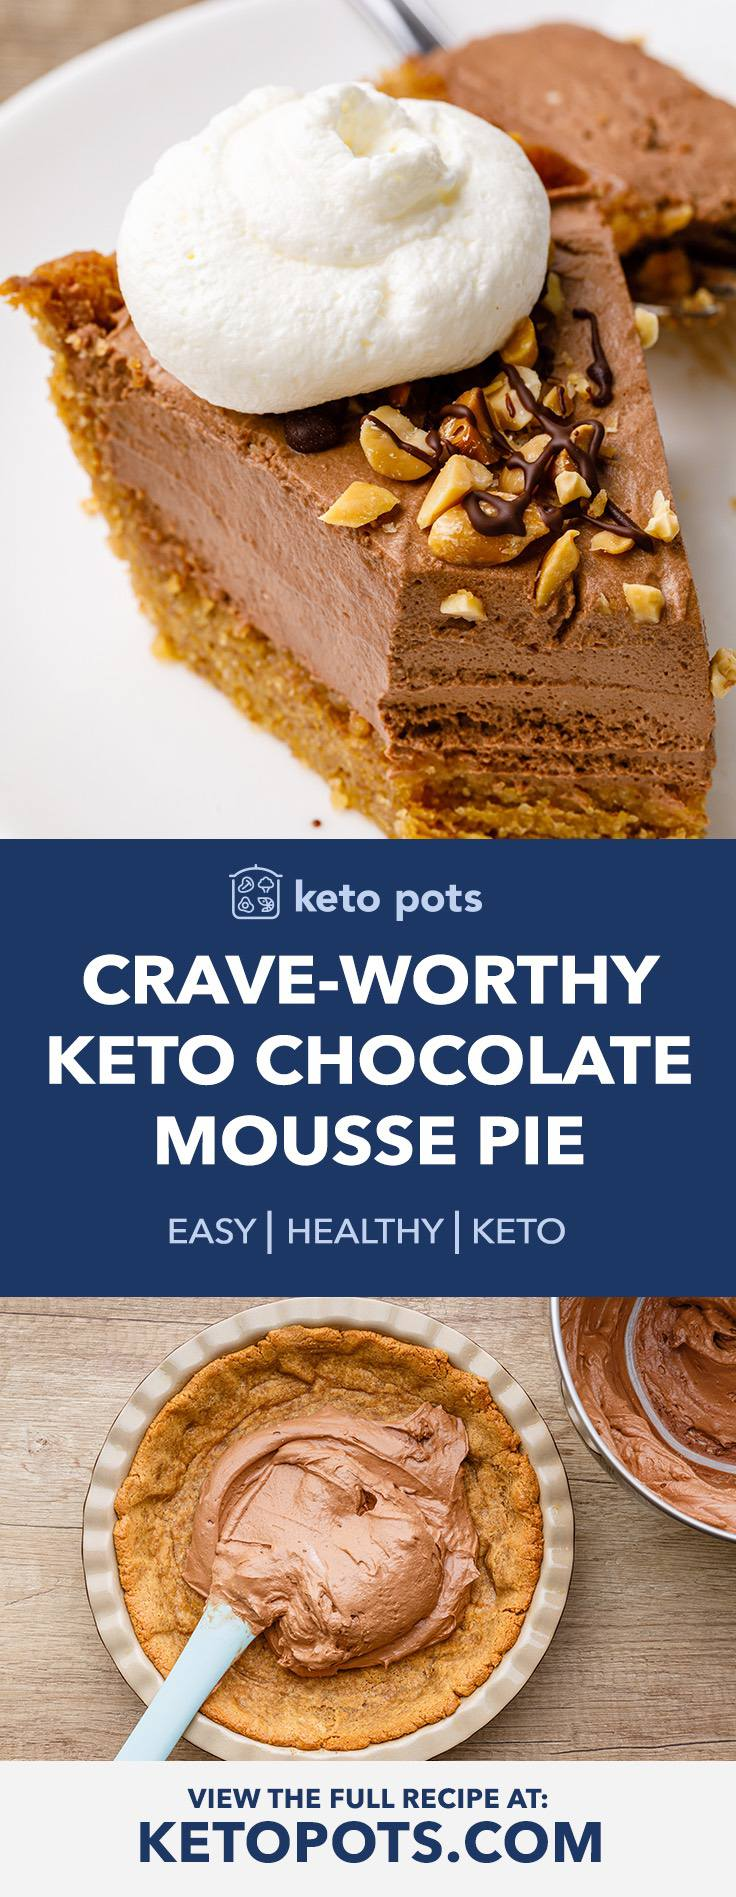 Creamy Keto Chocolate Mousse Pie with a Homemade Peanut Butter Crust